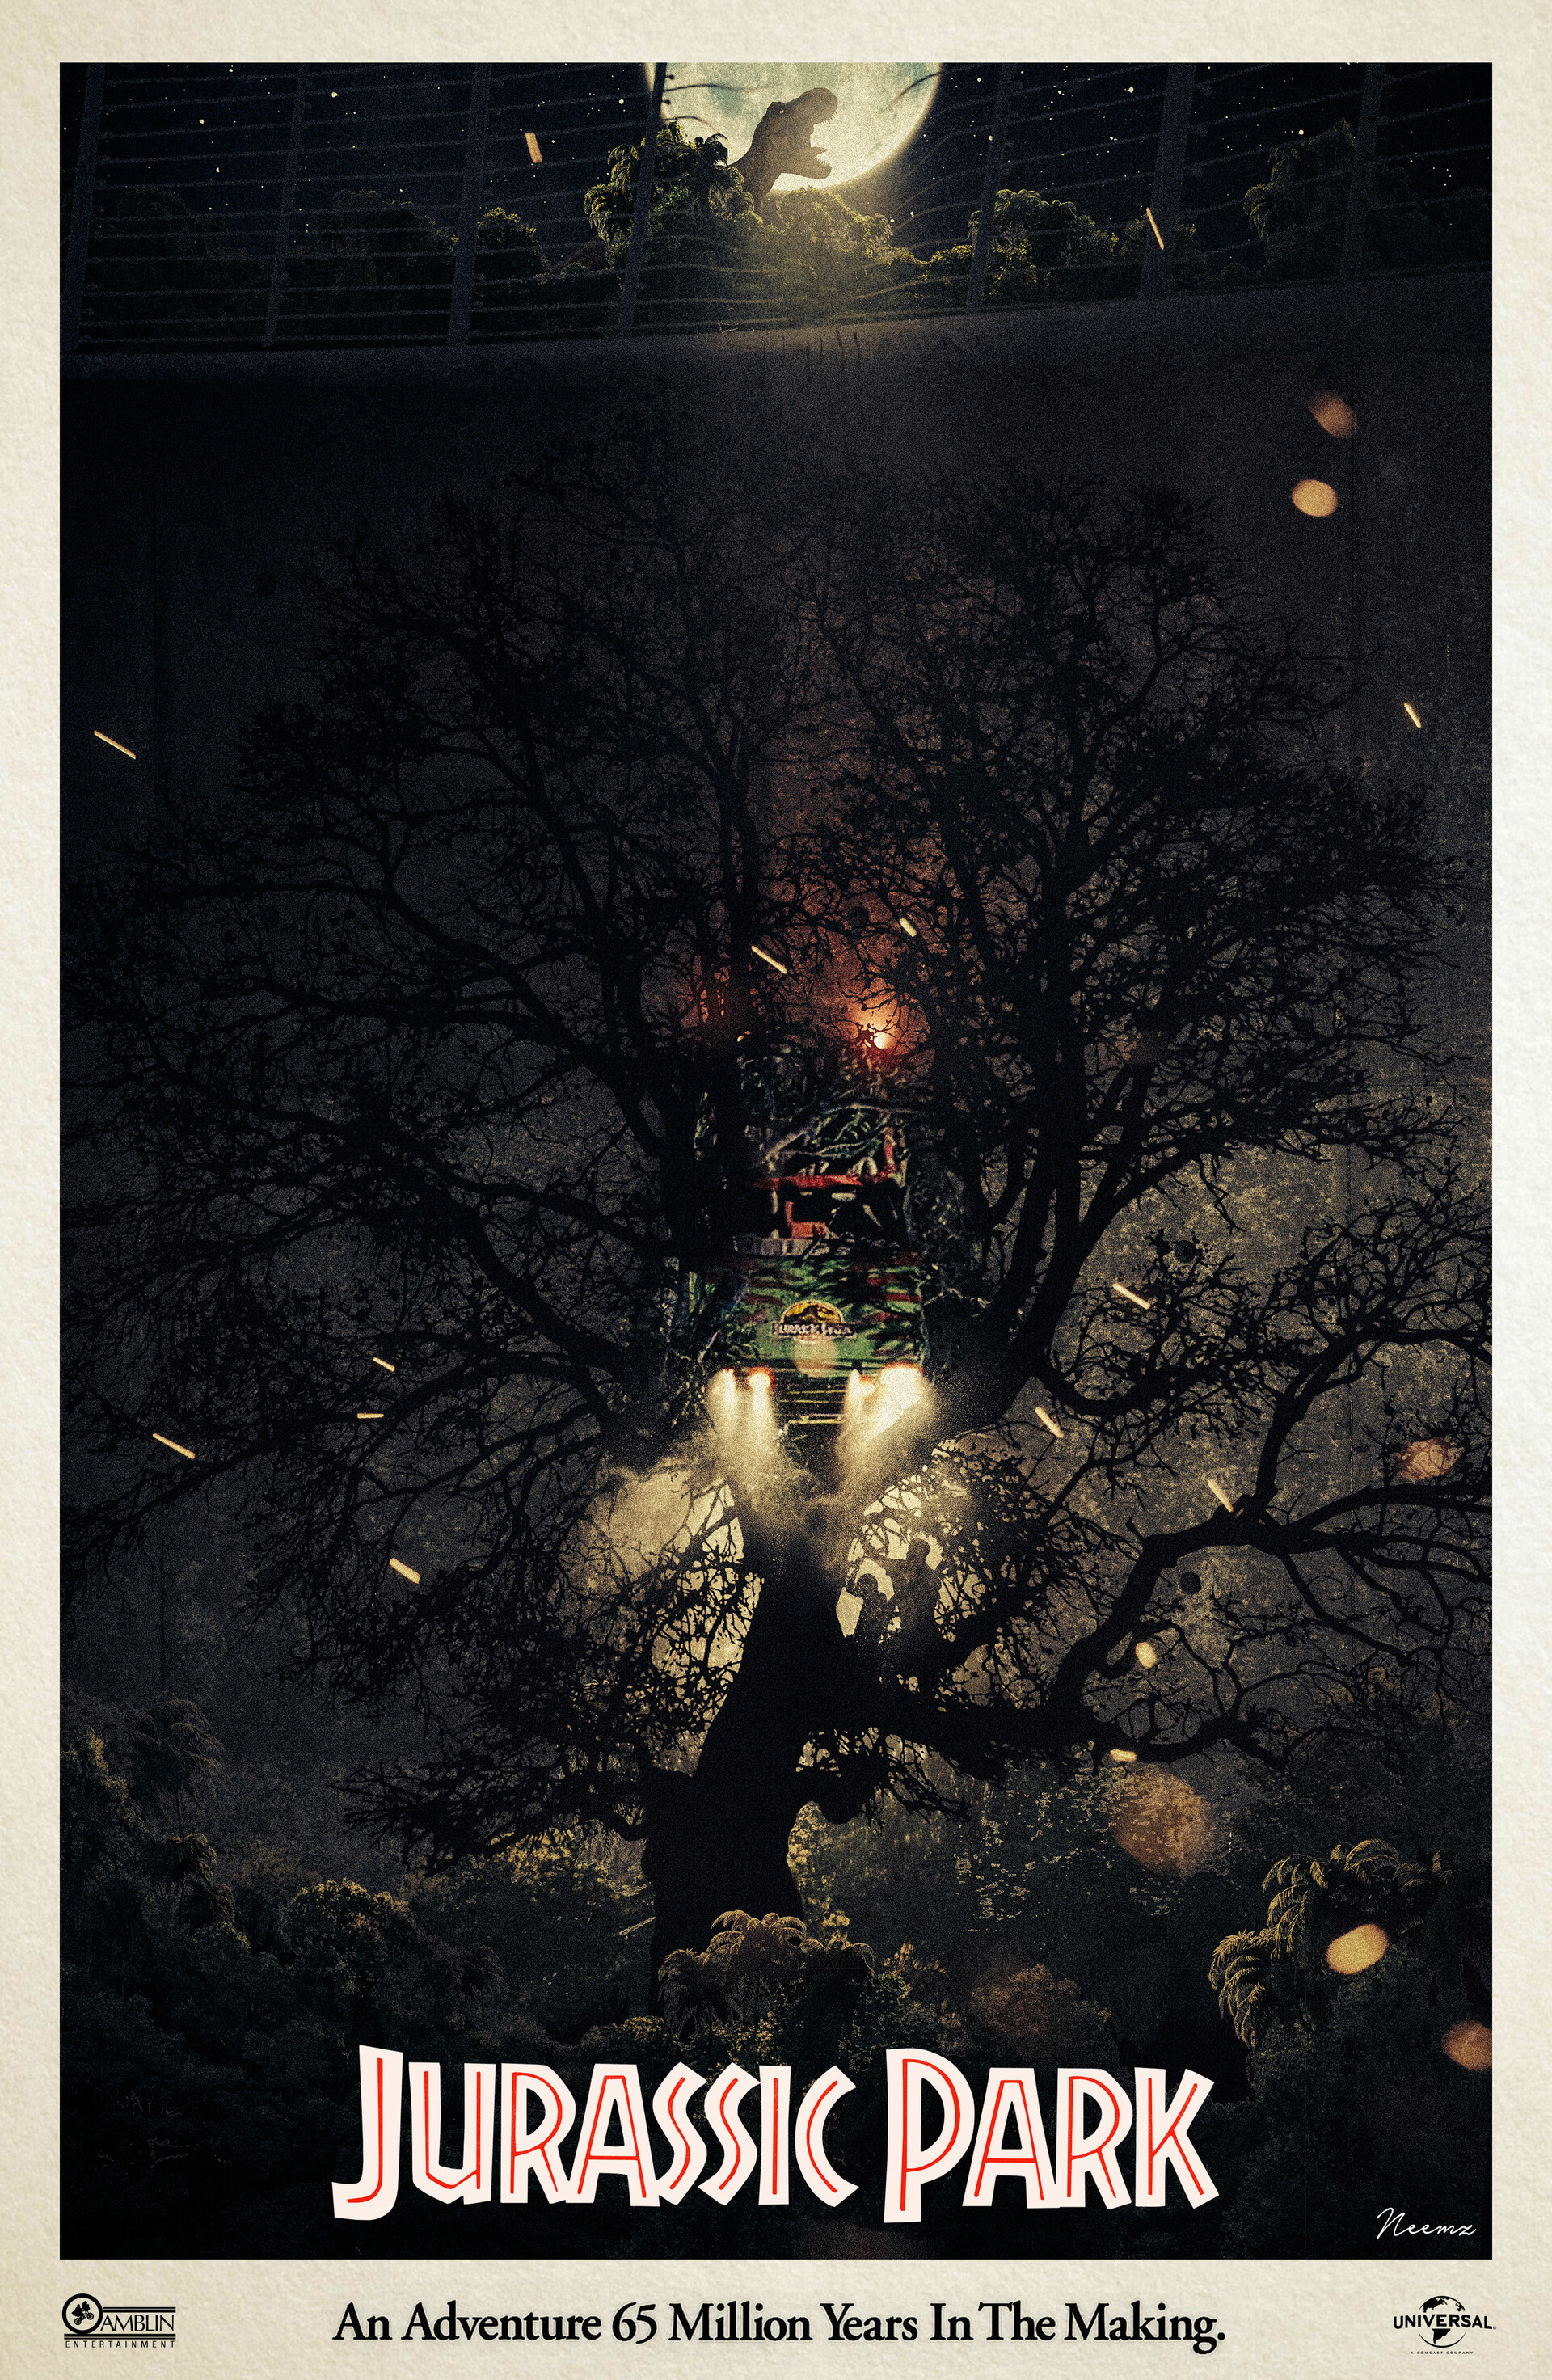 """Did your dad ever build you a treehouse Tim?"" #AlternativeMoviePoster - I woke up yesterday with an idea for a poster & I challenged myself to see if I could make it a reality. After combining over 50+ images this is final result. What do you think?"